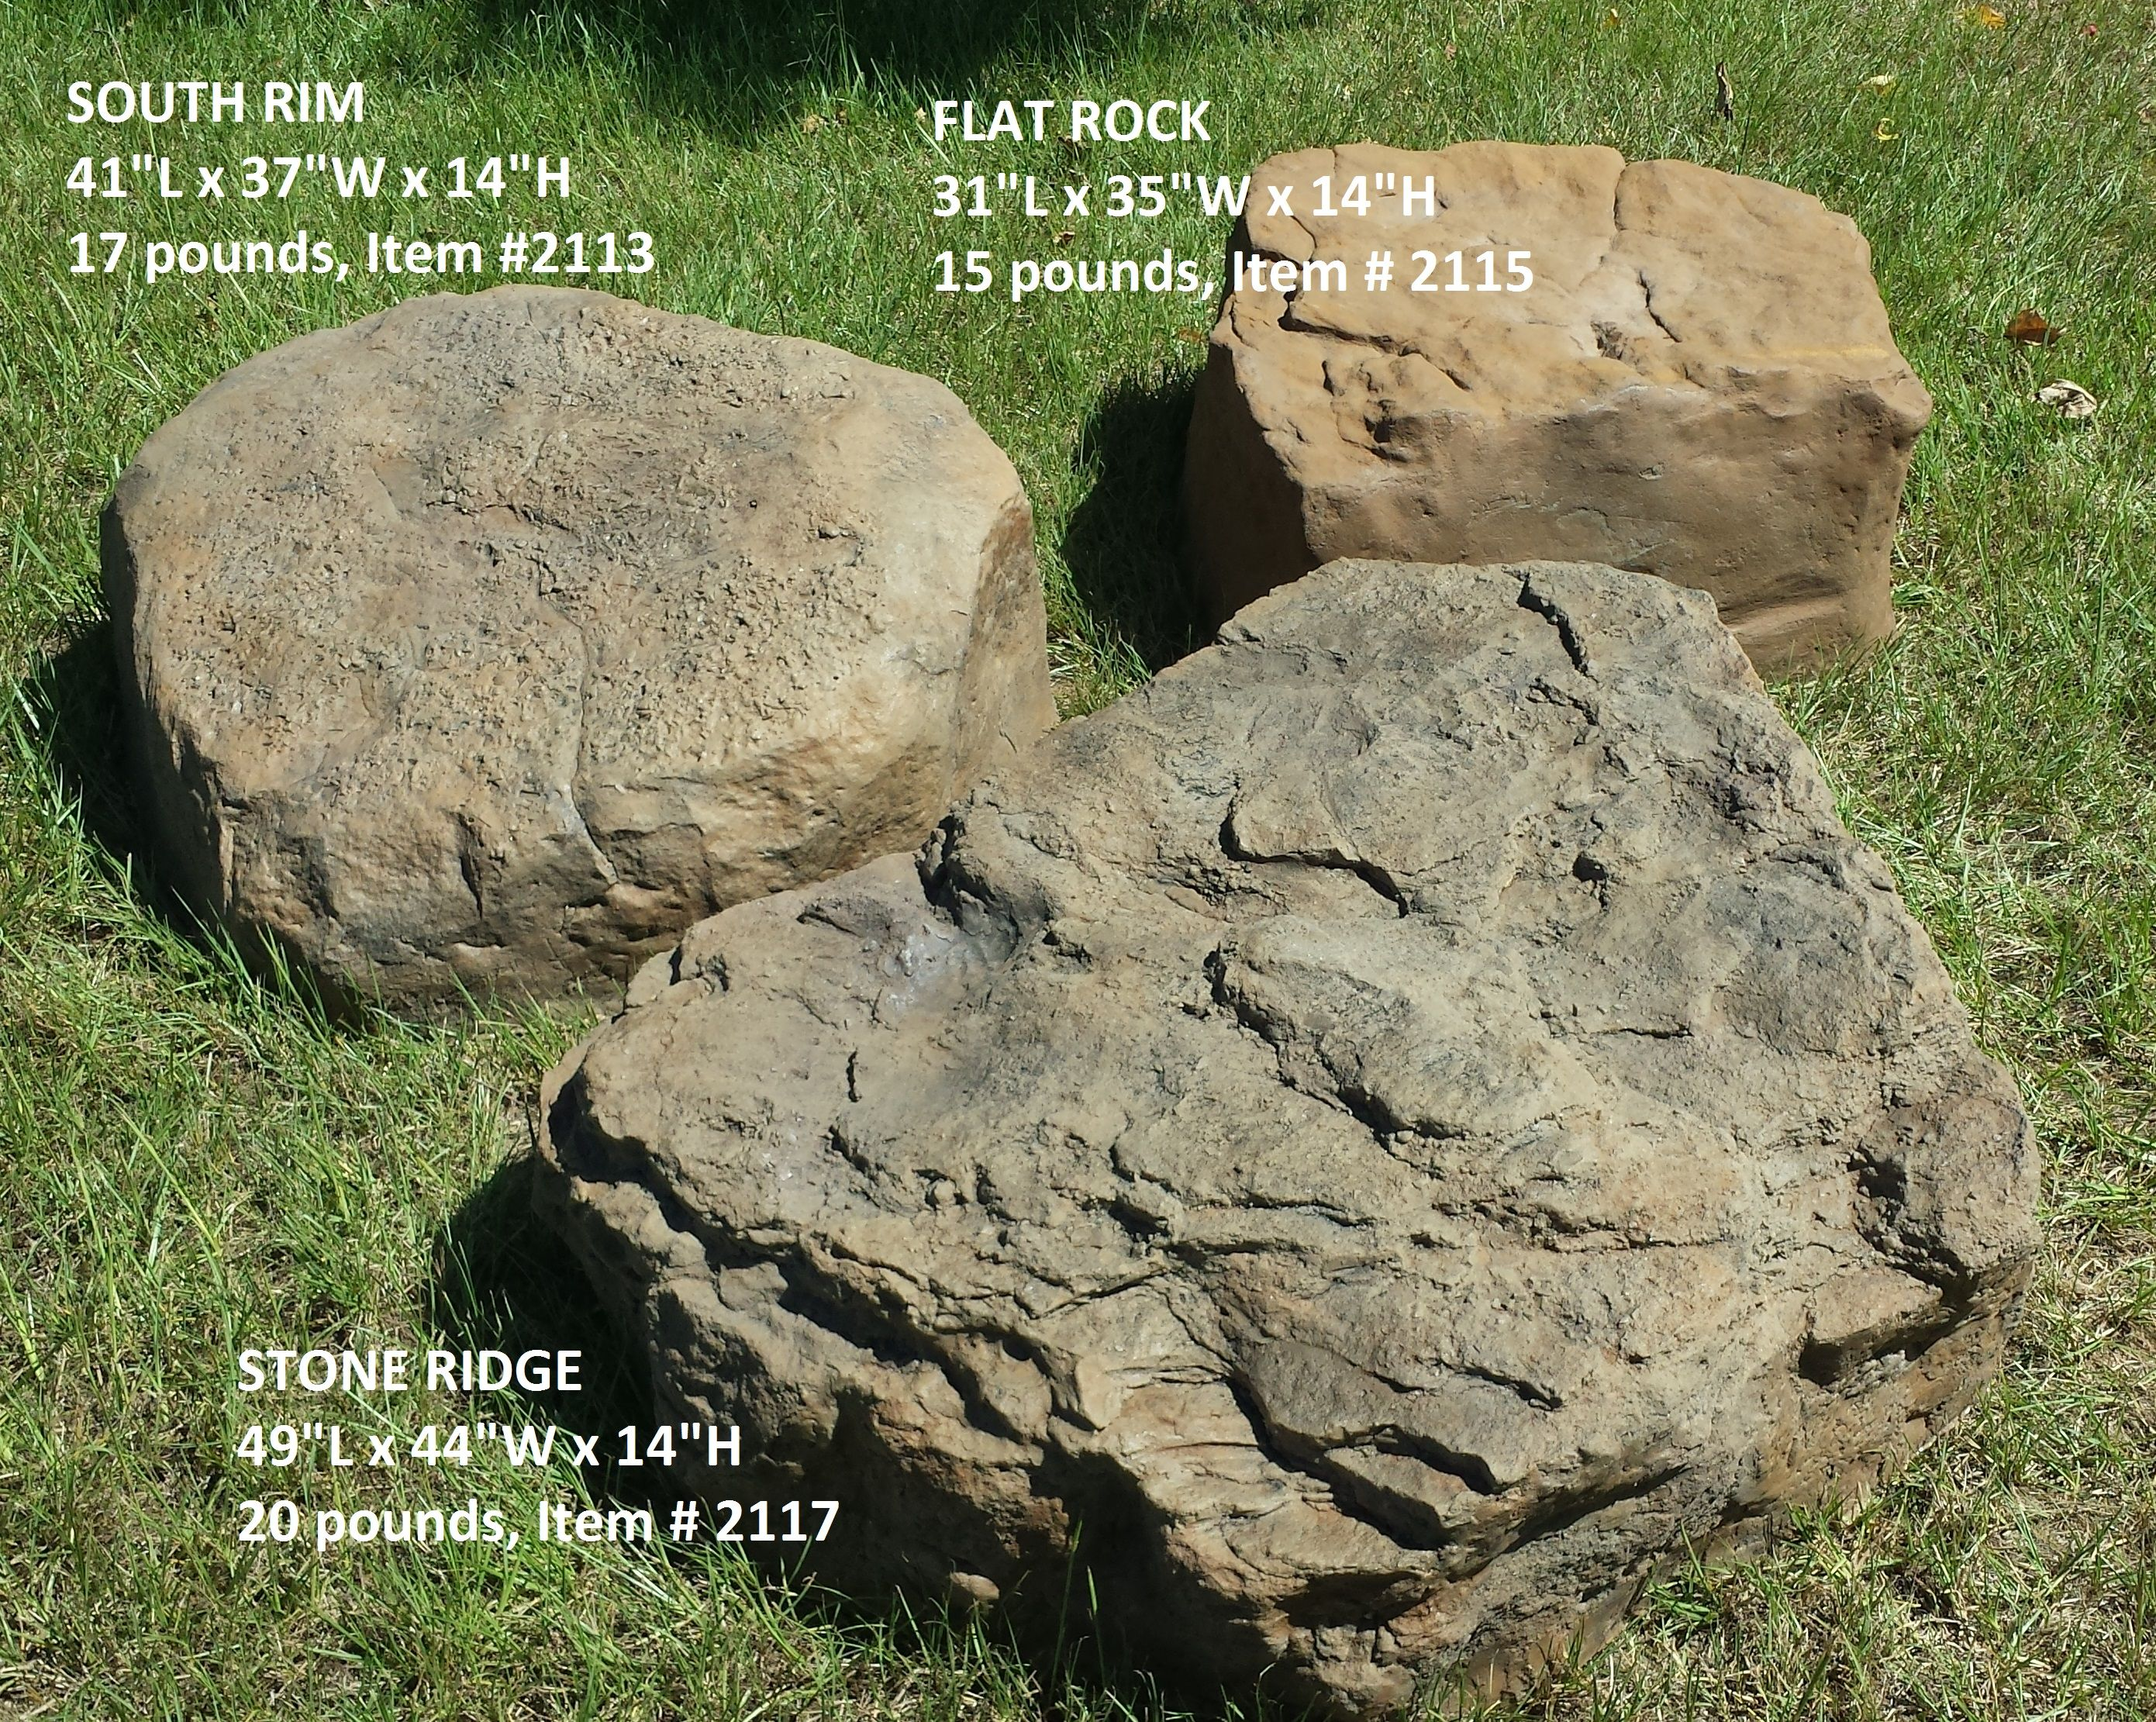 Fake Rock Septic Lid Cover Rocks Cover Those Unsightly Septic Lids With A Natural Looking Rock That Fake Rock Septic Tank Covers Front Yard Landscaping Plans